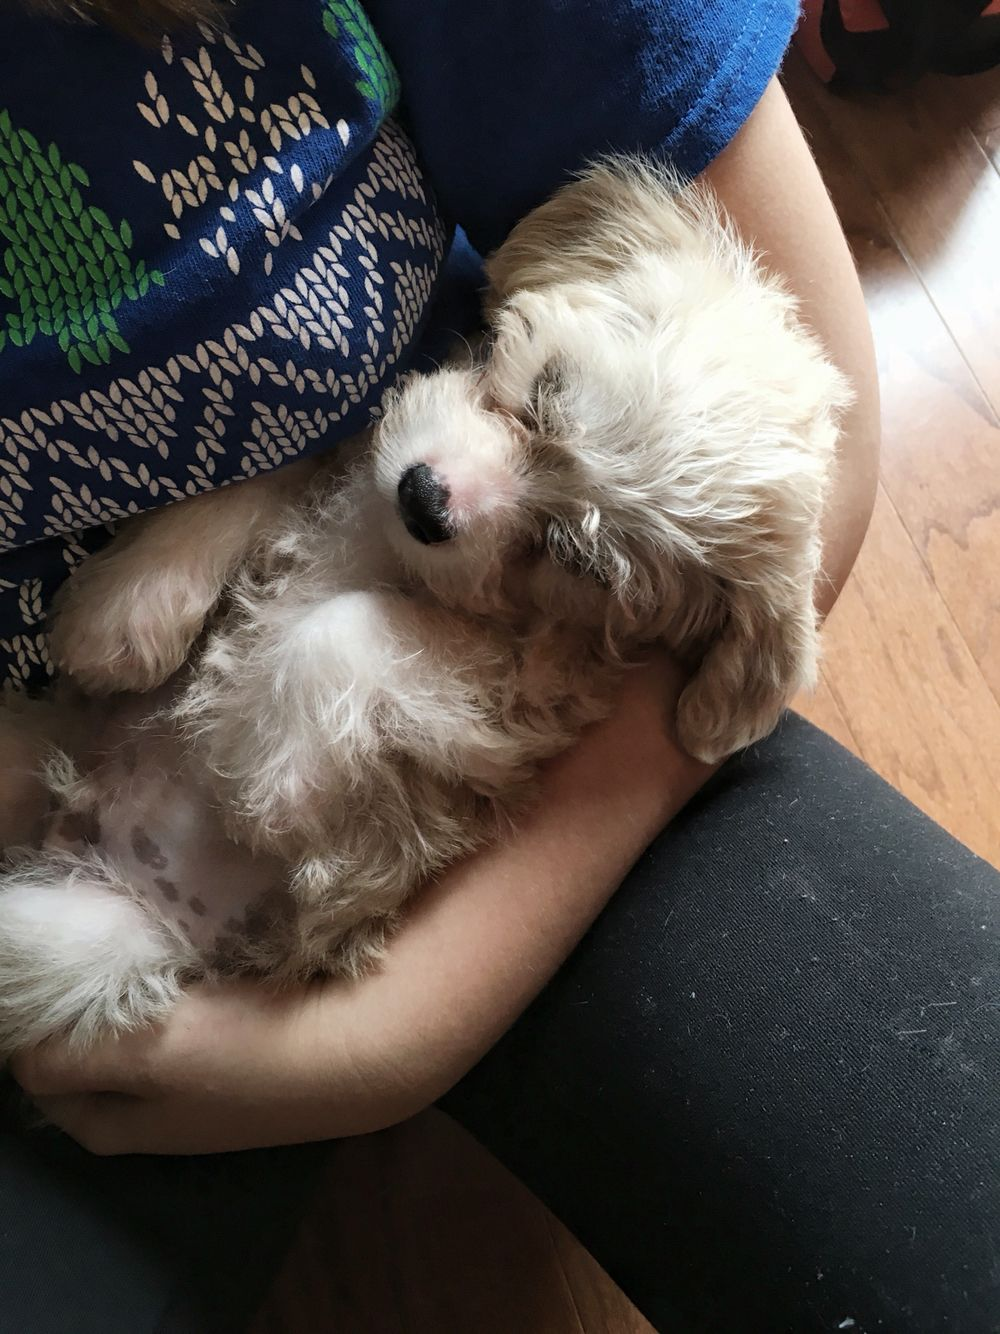 My New Member Of The Family Doodle He Is A Precious Maltese Shih Tzu Chihuahua Poodle Mix Chihuahua Poodle Mix Maltese Shih Tzu Cute Creatures